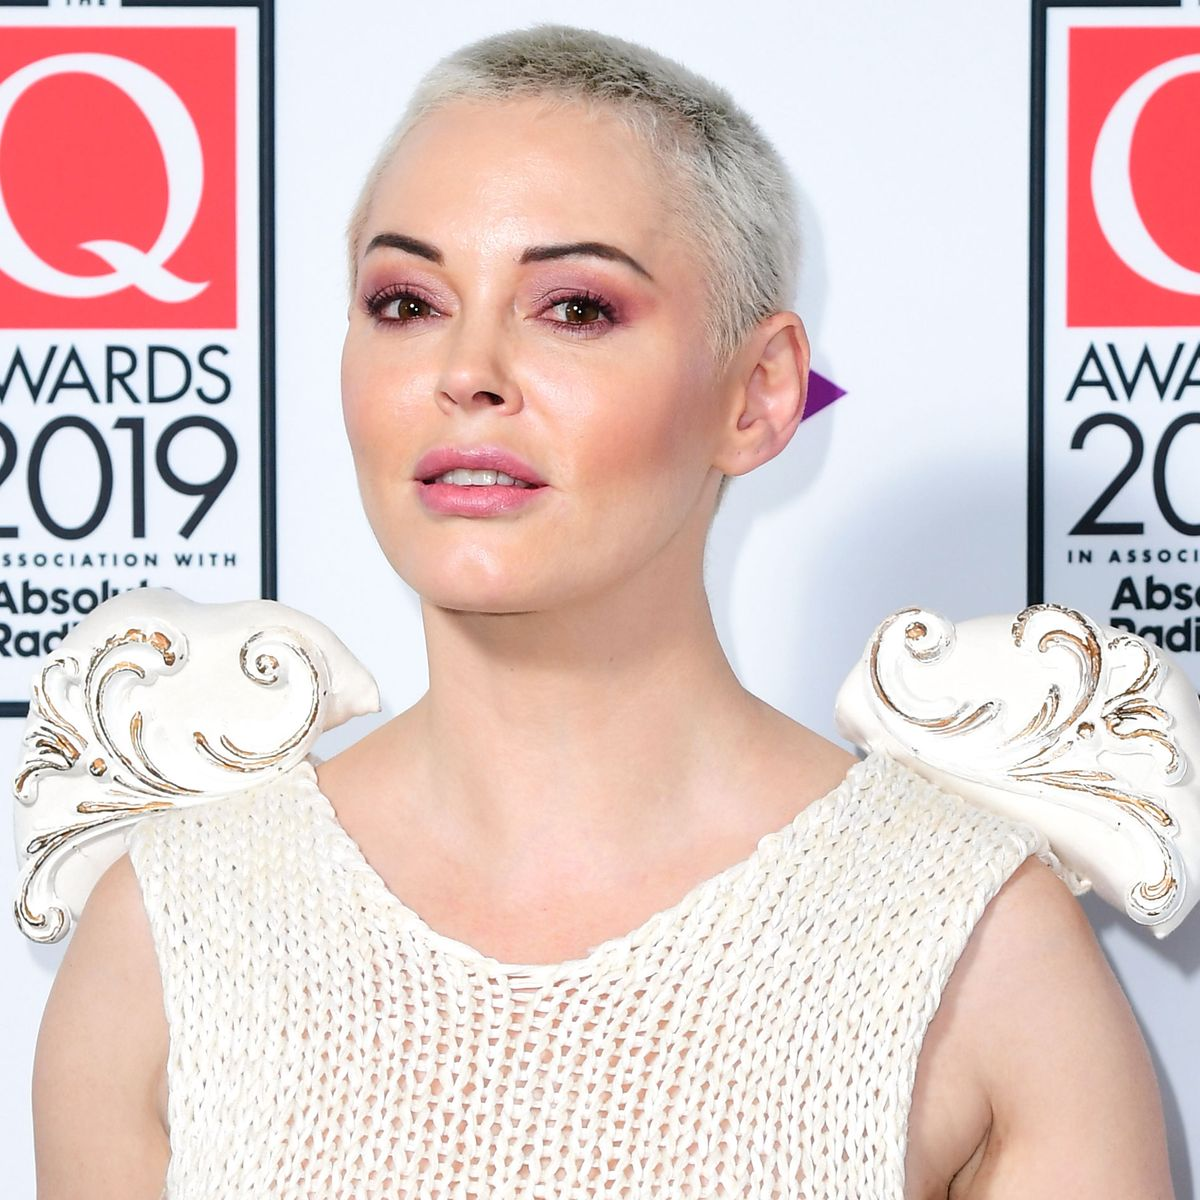 Rose Mcgowan Accuses Alexander Payne Of Sexual Misconduct